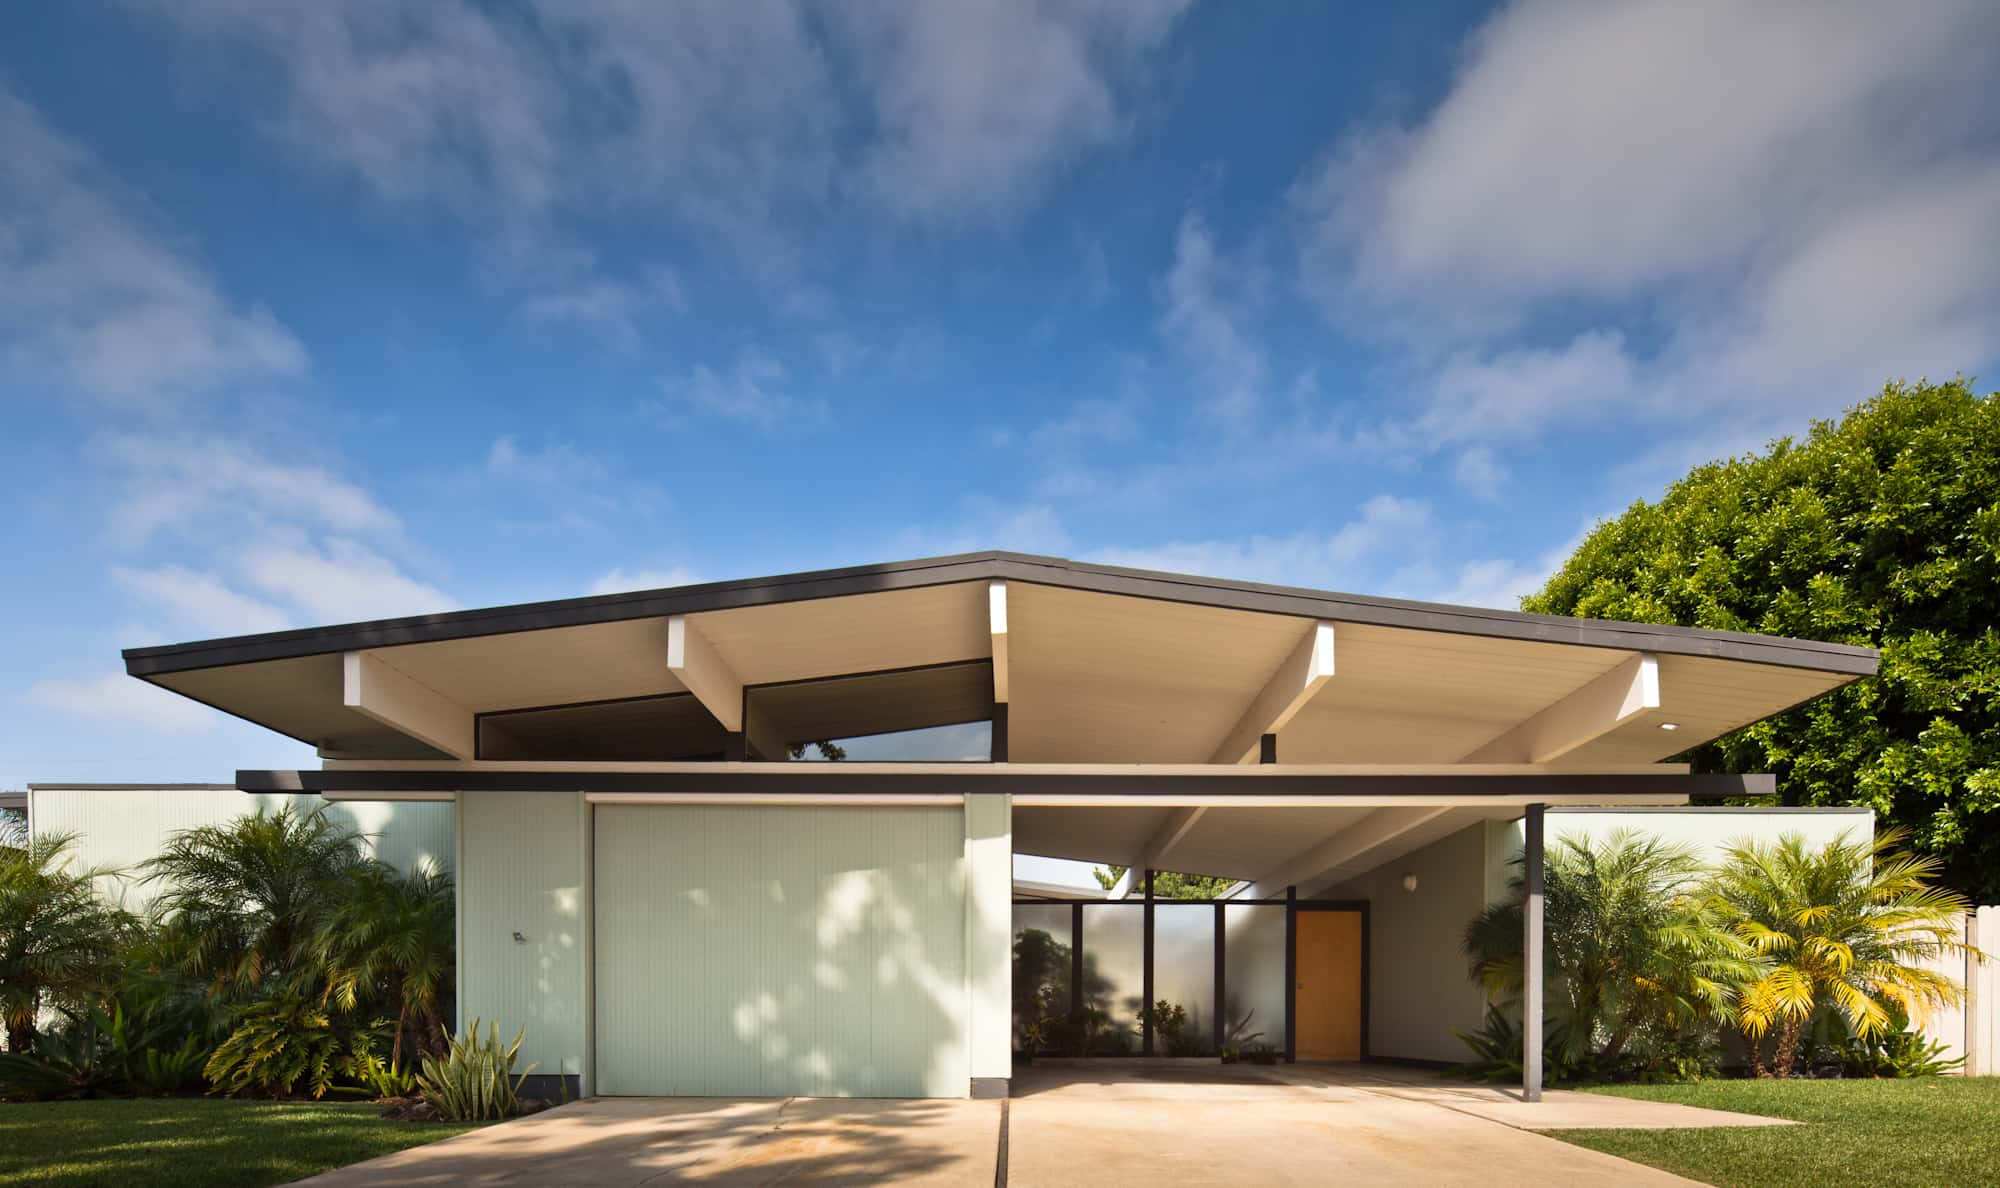 California Modern Architecture Eichler Homes From Niche To Mainstream